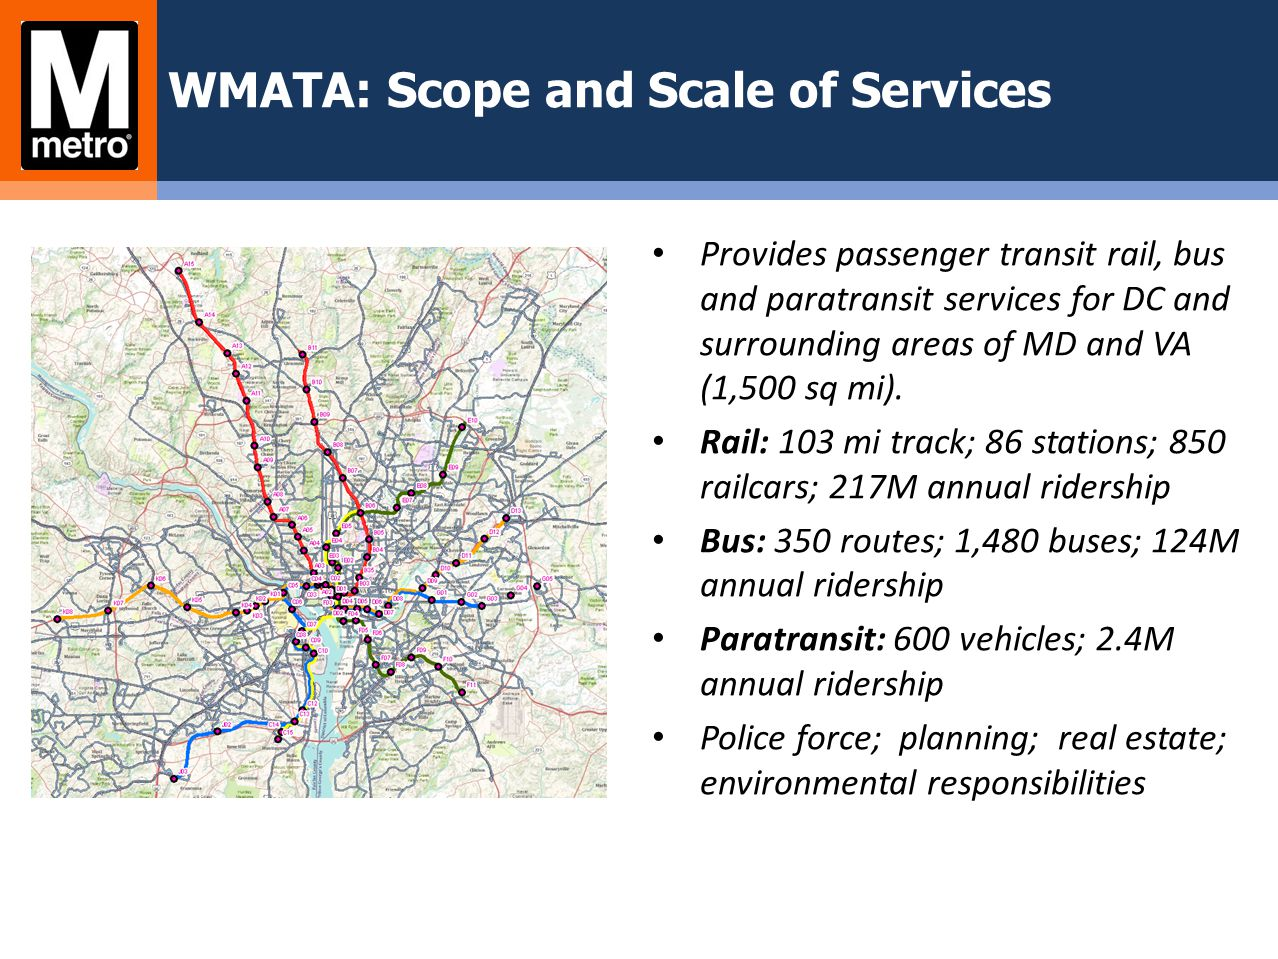 WMATA: Scope and Scale of Services Provides passenger transit rail, bus and paratransit services for DC and surrounding areas of MD and VA (1,500 sq m